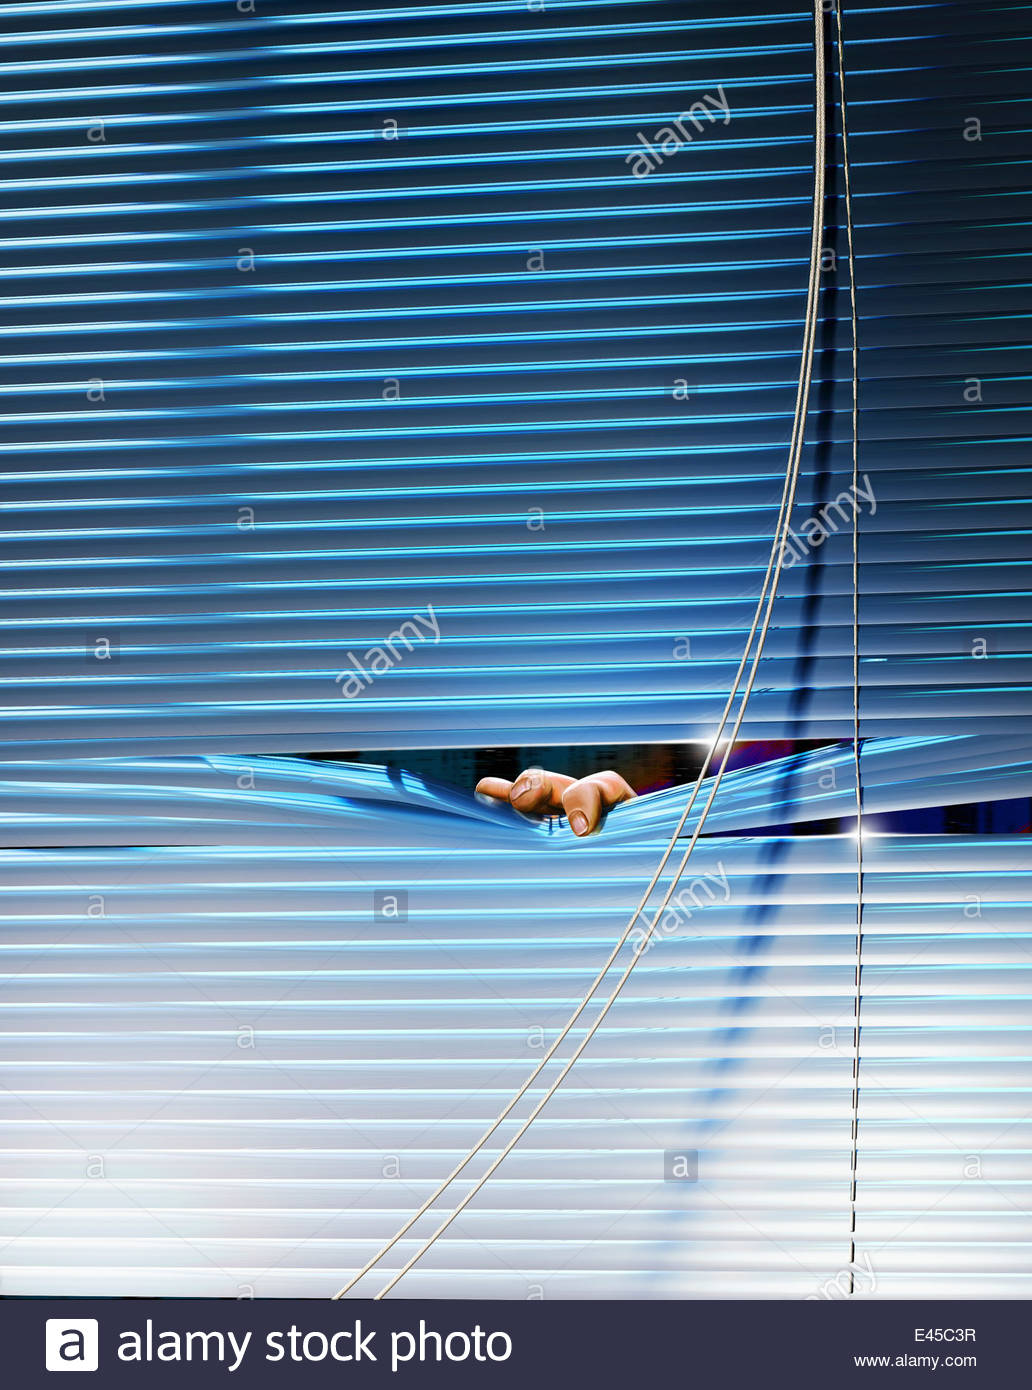 Fingers peeping out from venetian blinds - Stock Image